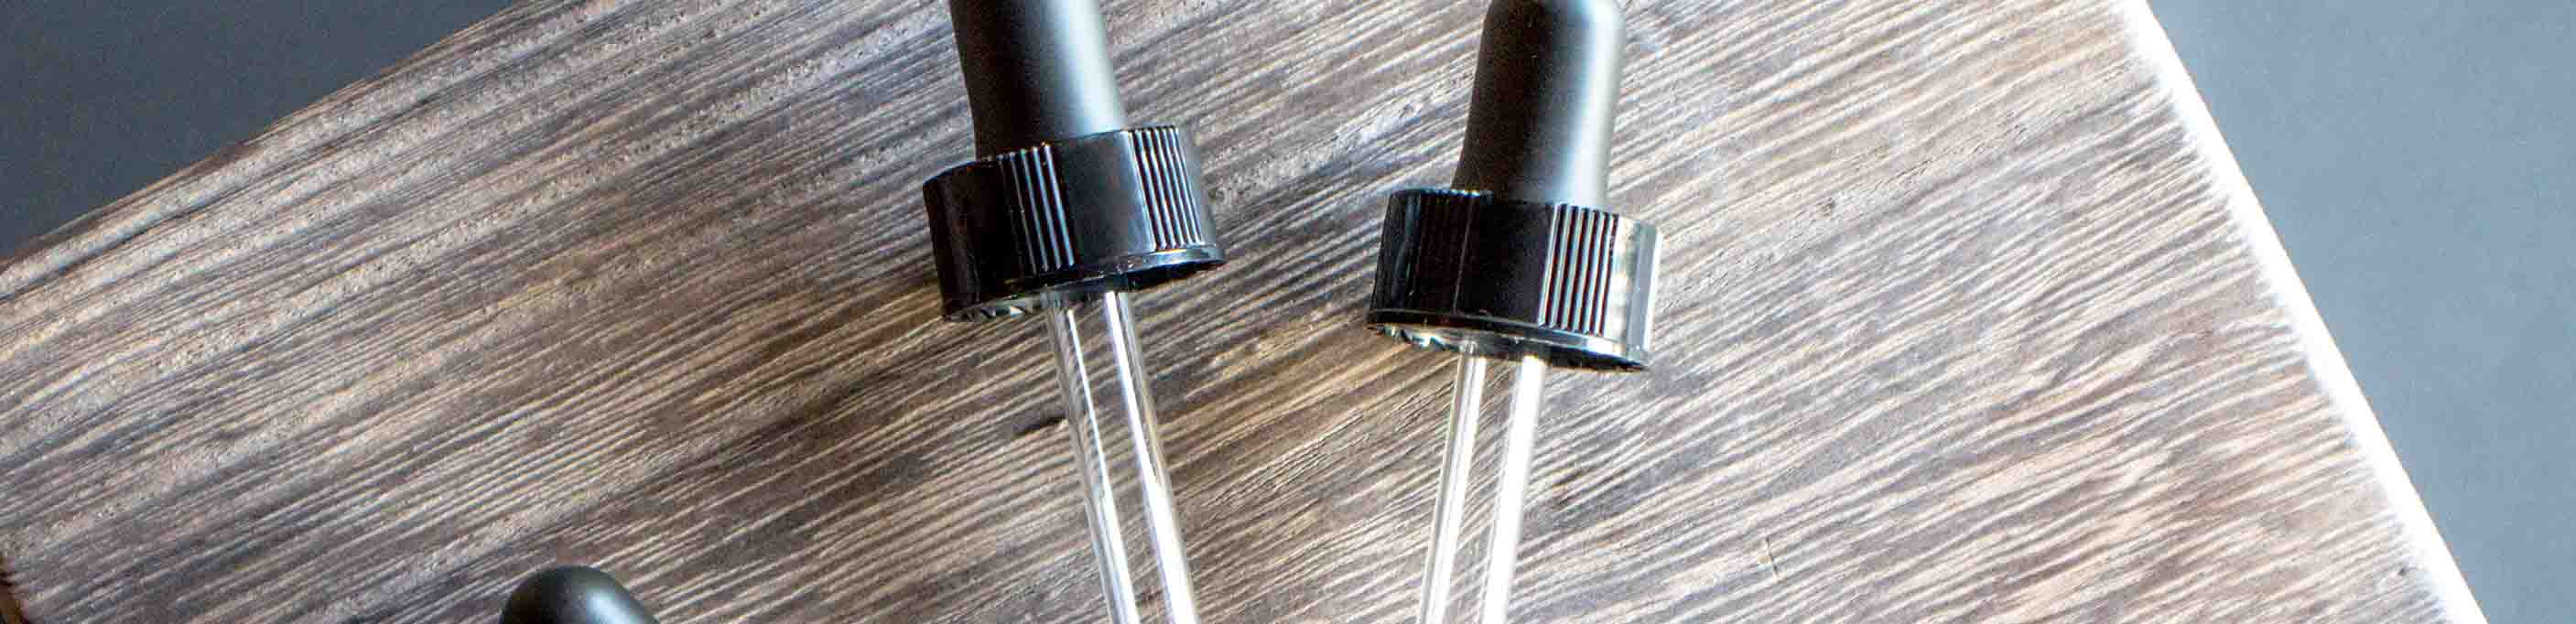 Essential Oil Droppers and Pipettes